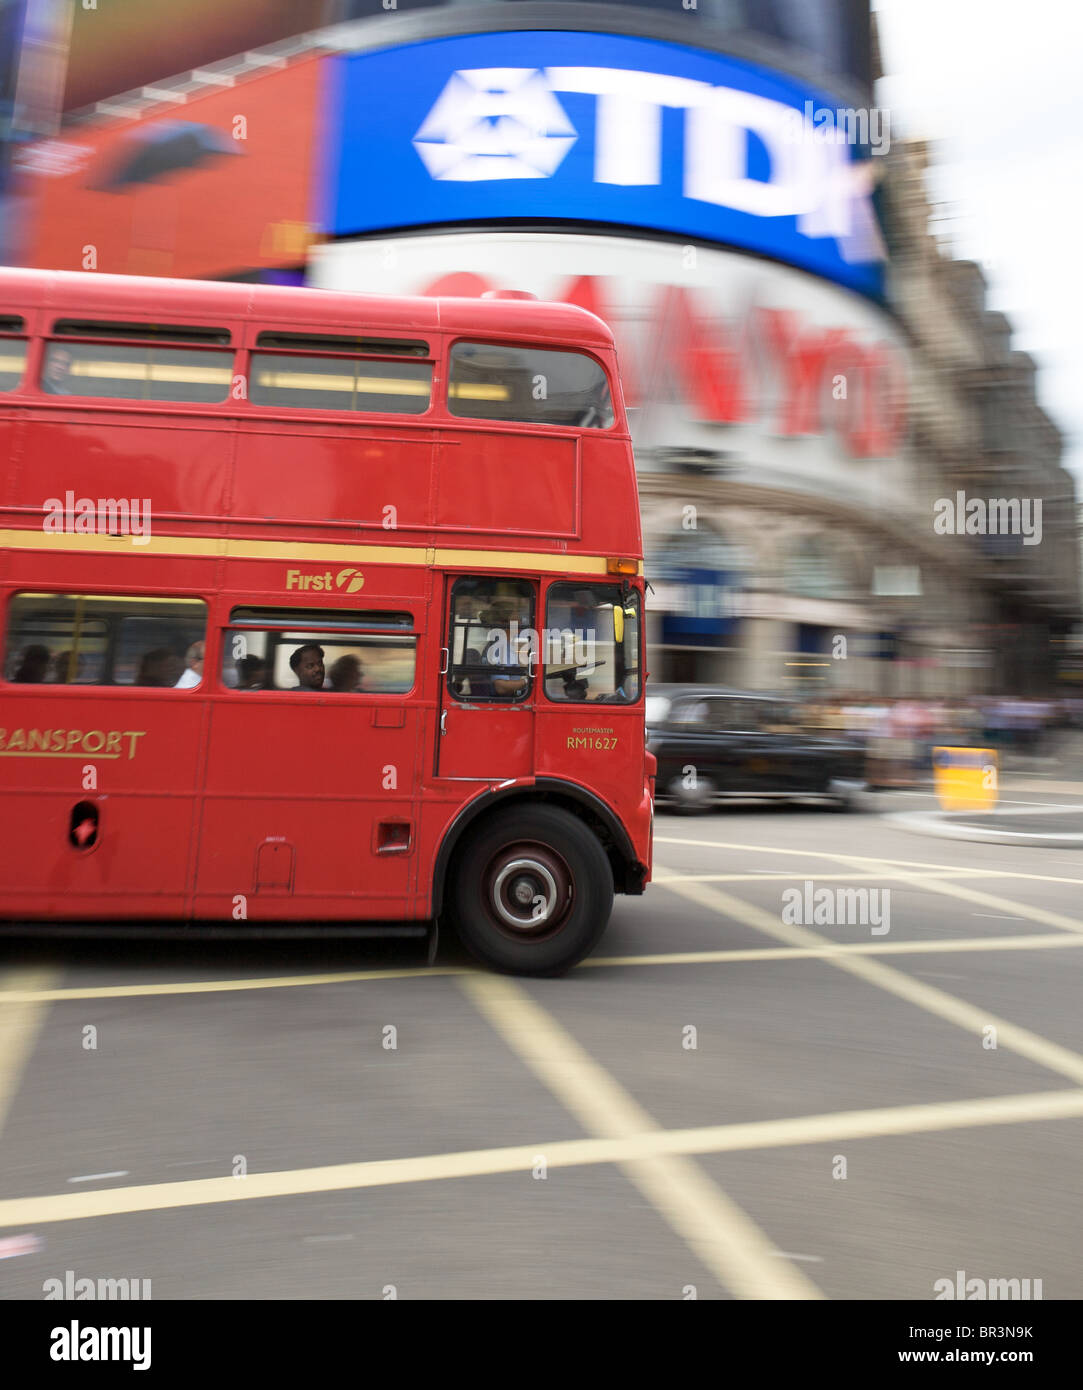 Old London Routemaster bus in Piccadilly Circus - Stock Image